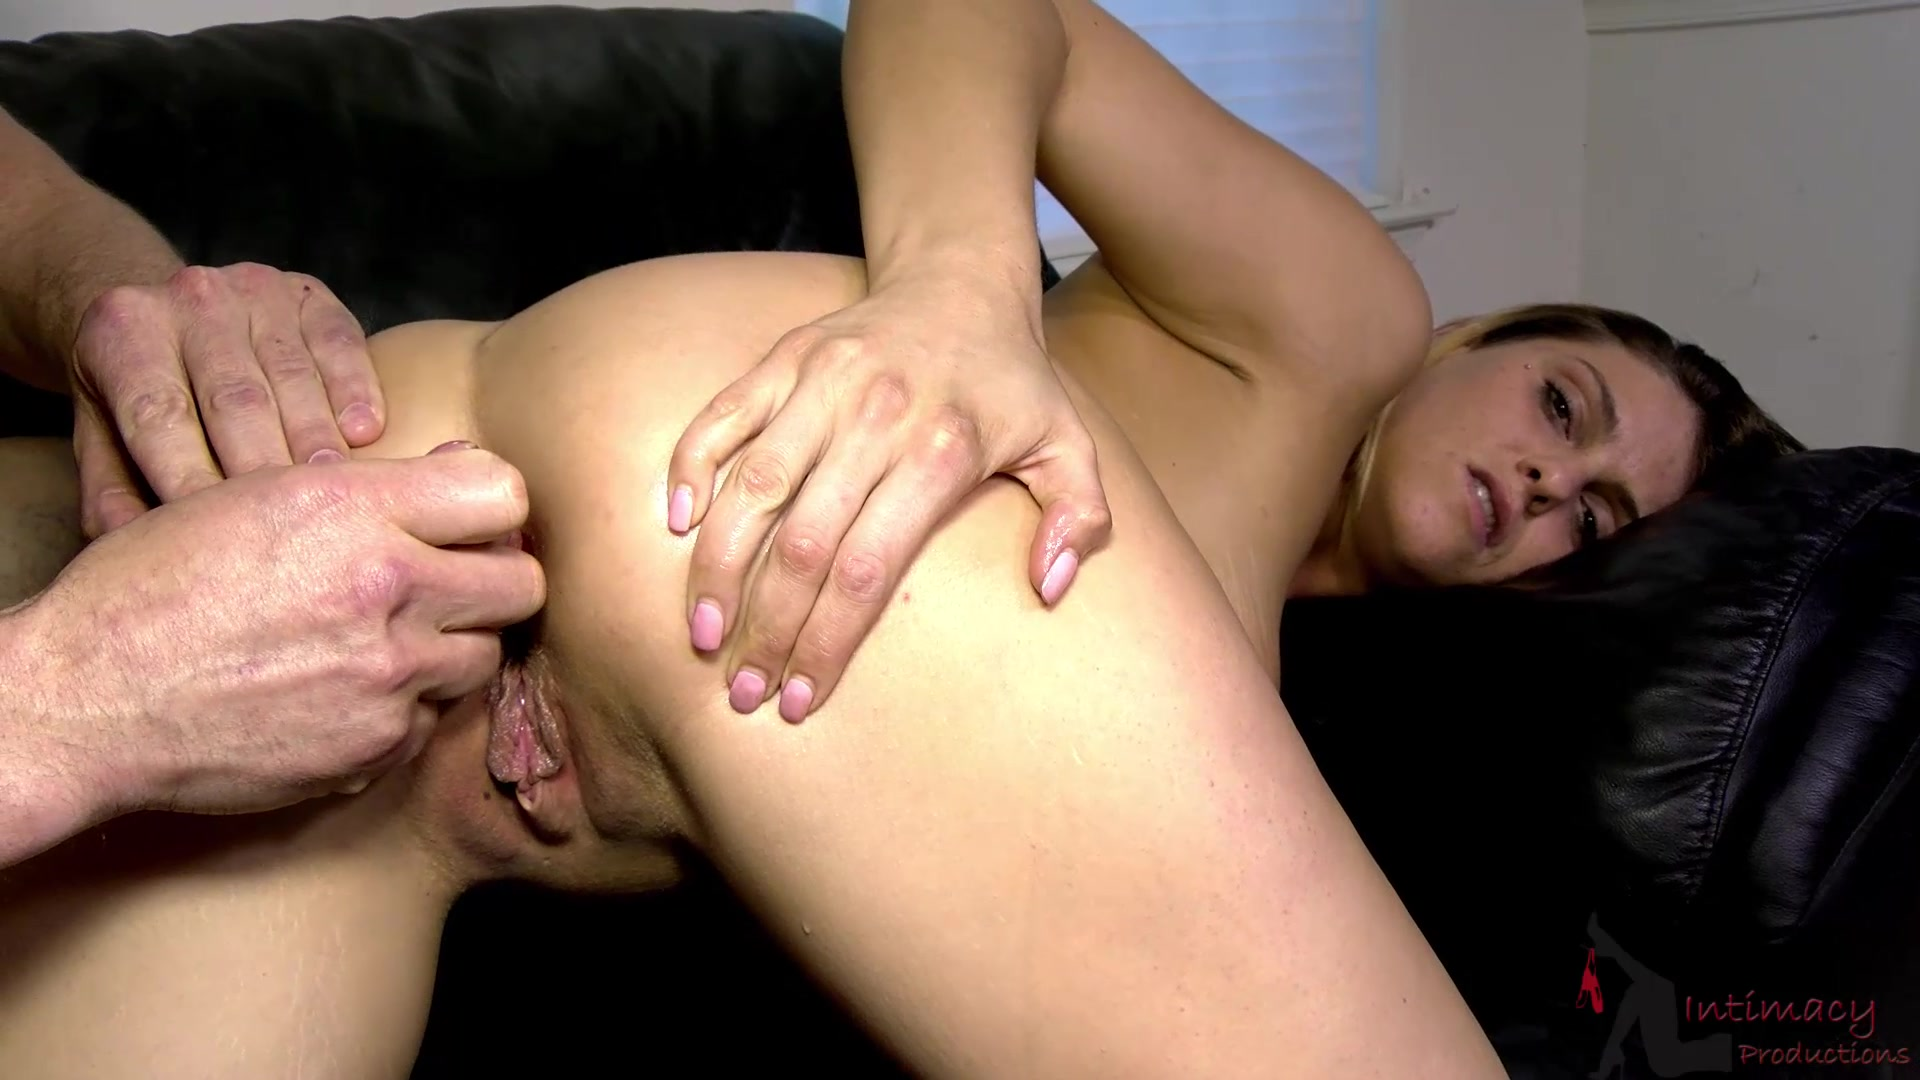 Butt Plug And Sex